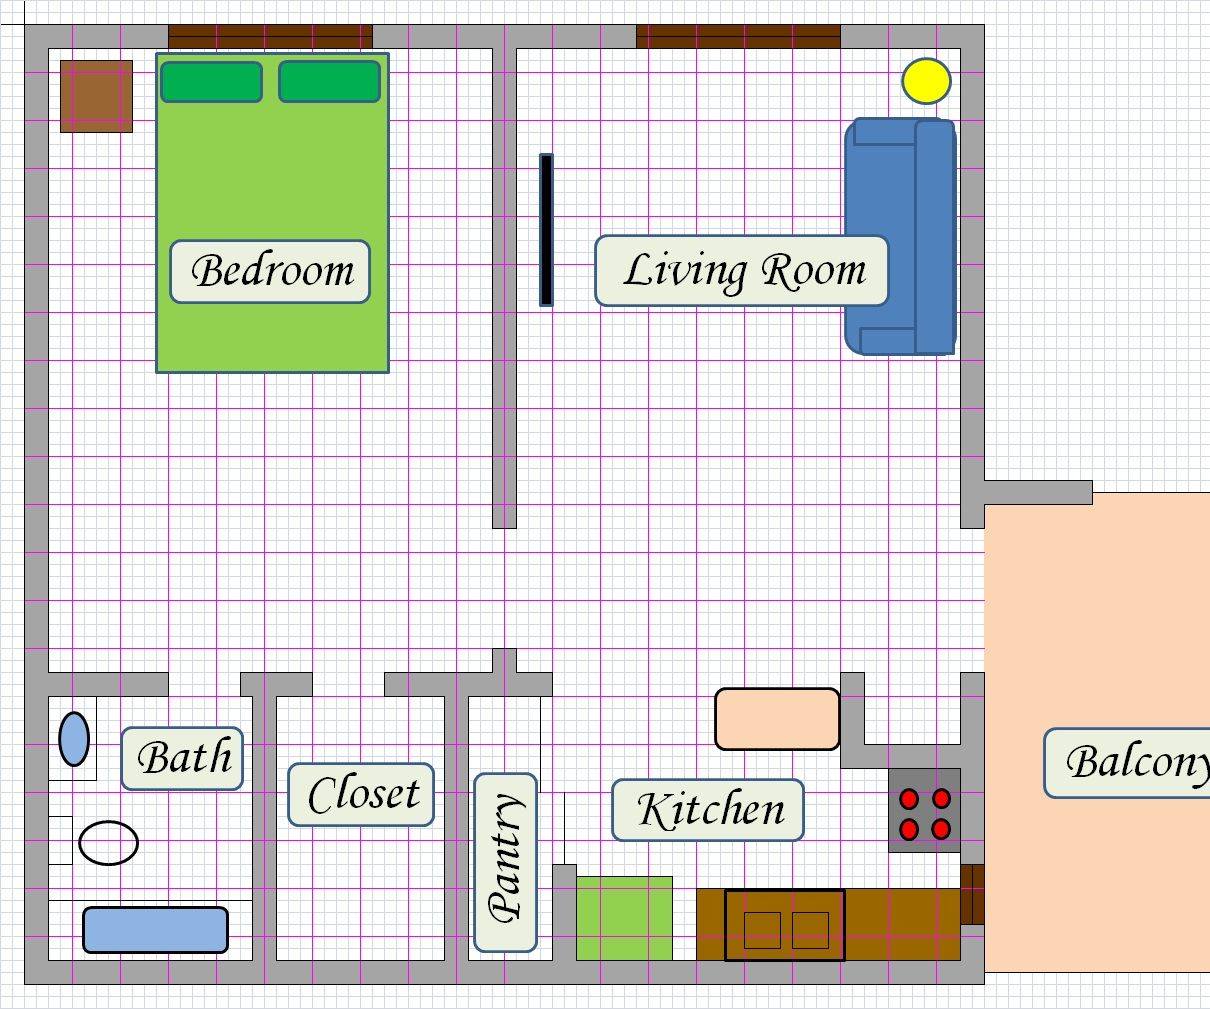 Create Floor Plan Using MS Excel : 5 Steps (with Pictures) - Instructables